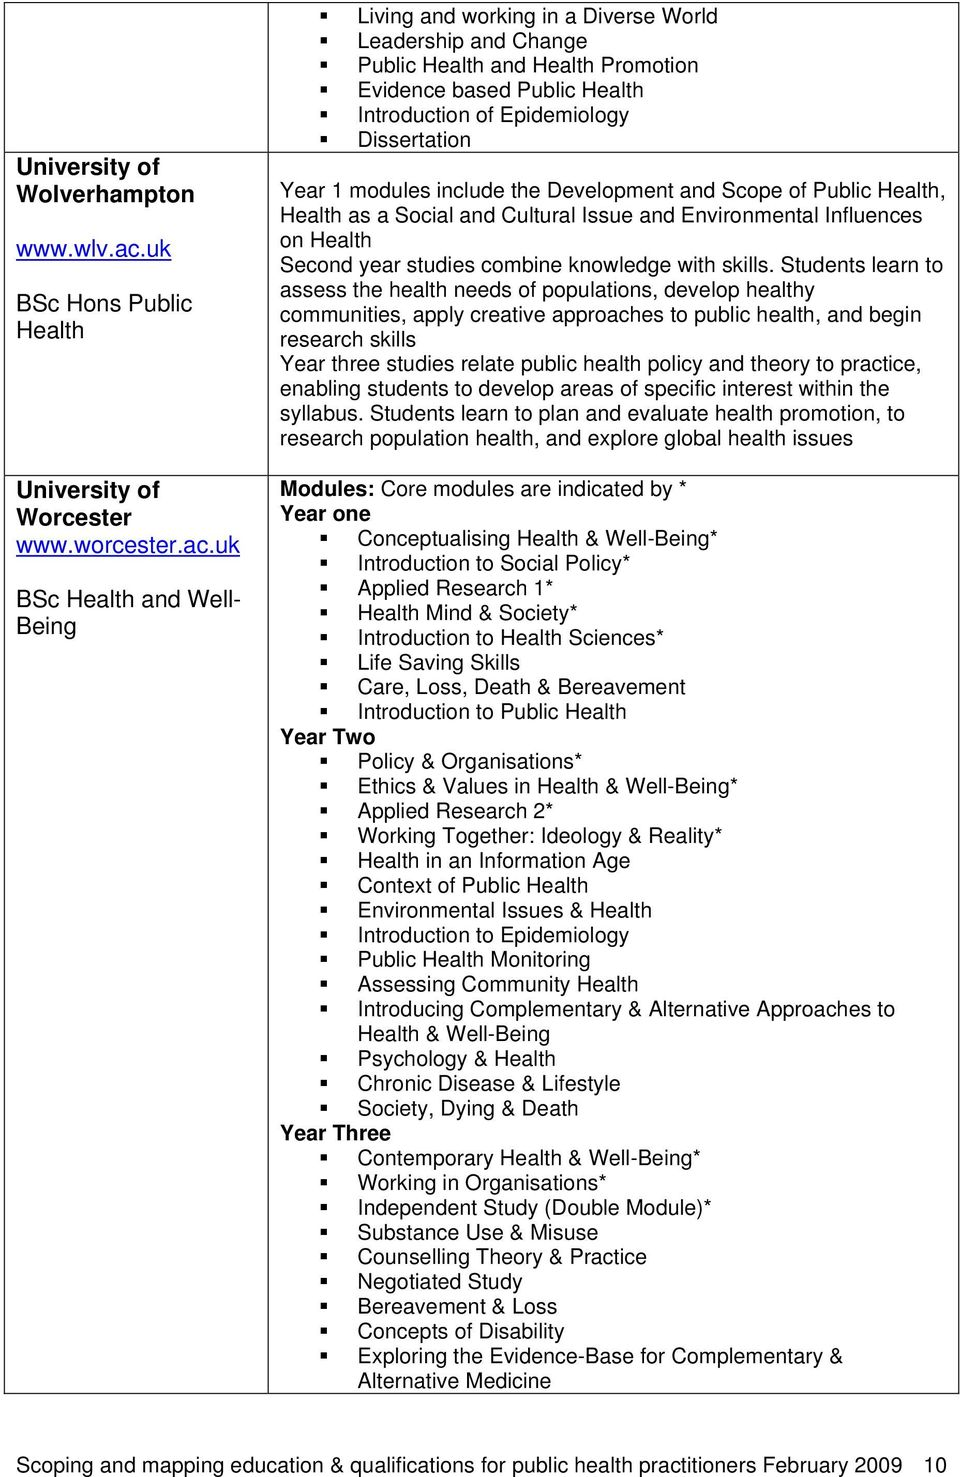 uk BSc Health and Well- Being Living and working in a Diverse World Leadership and Change Public Health and Health Promotion Evidence based Public Health Introduction of Epidemiology Dissertation